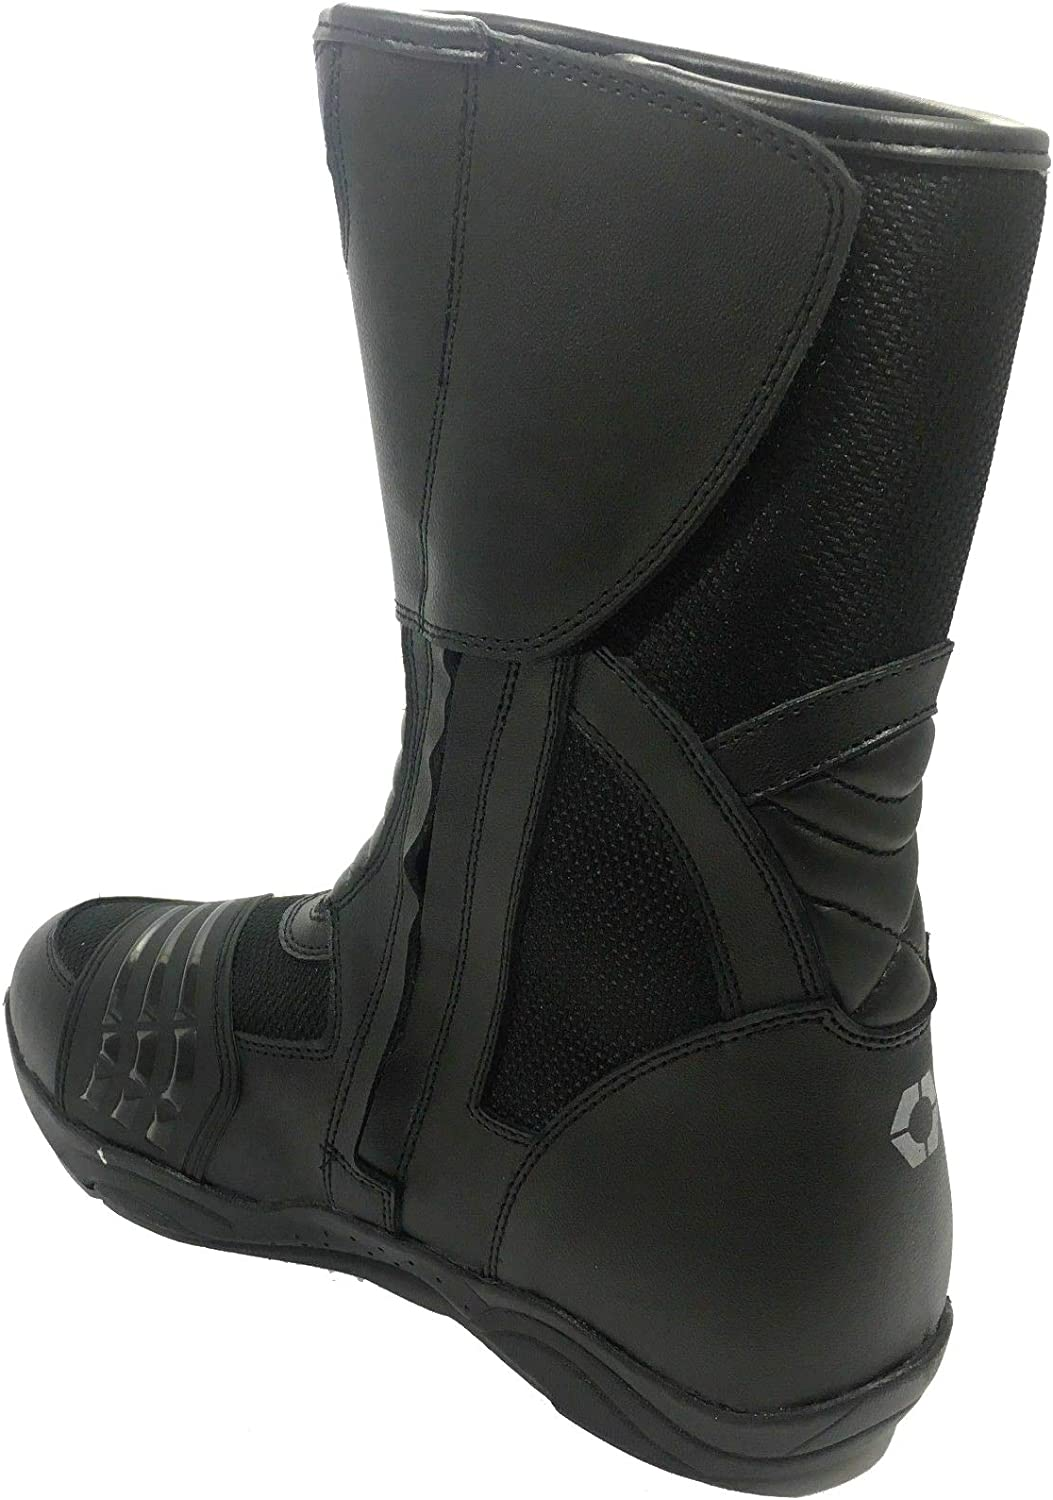 MOTORBIKE BOLT R47 ATTIKO TOURING BOOTS Motorcycle Scooter Men /& Women Waterproof Urban Sports Biker Rider CE Approved Armour Leather Boots